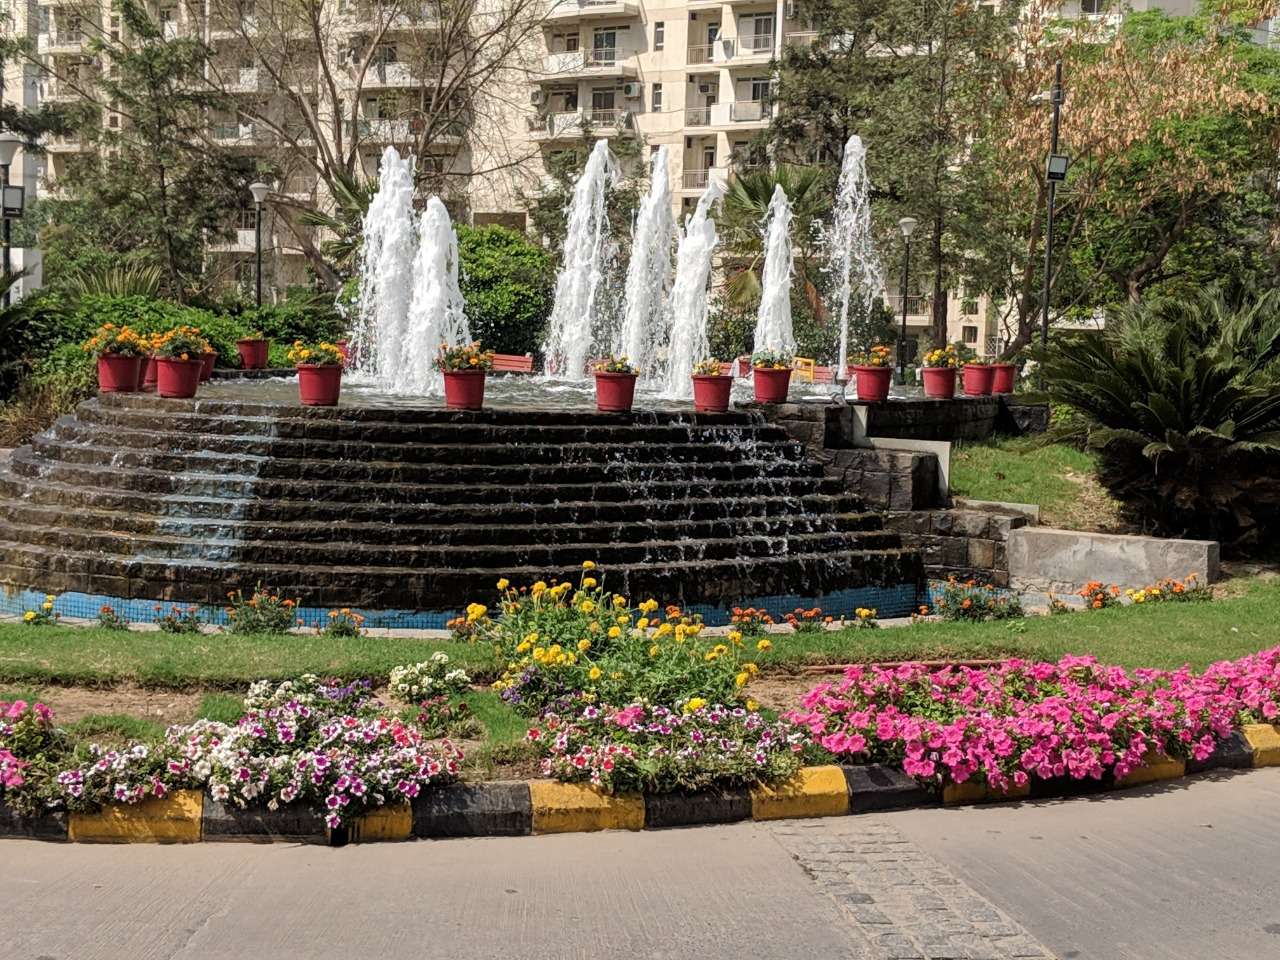 4BHK apartment for rent in ParkView City1, Gurgaon